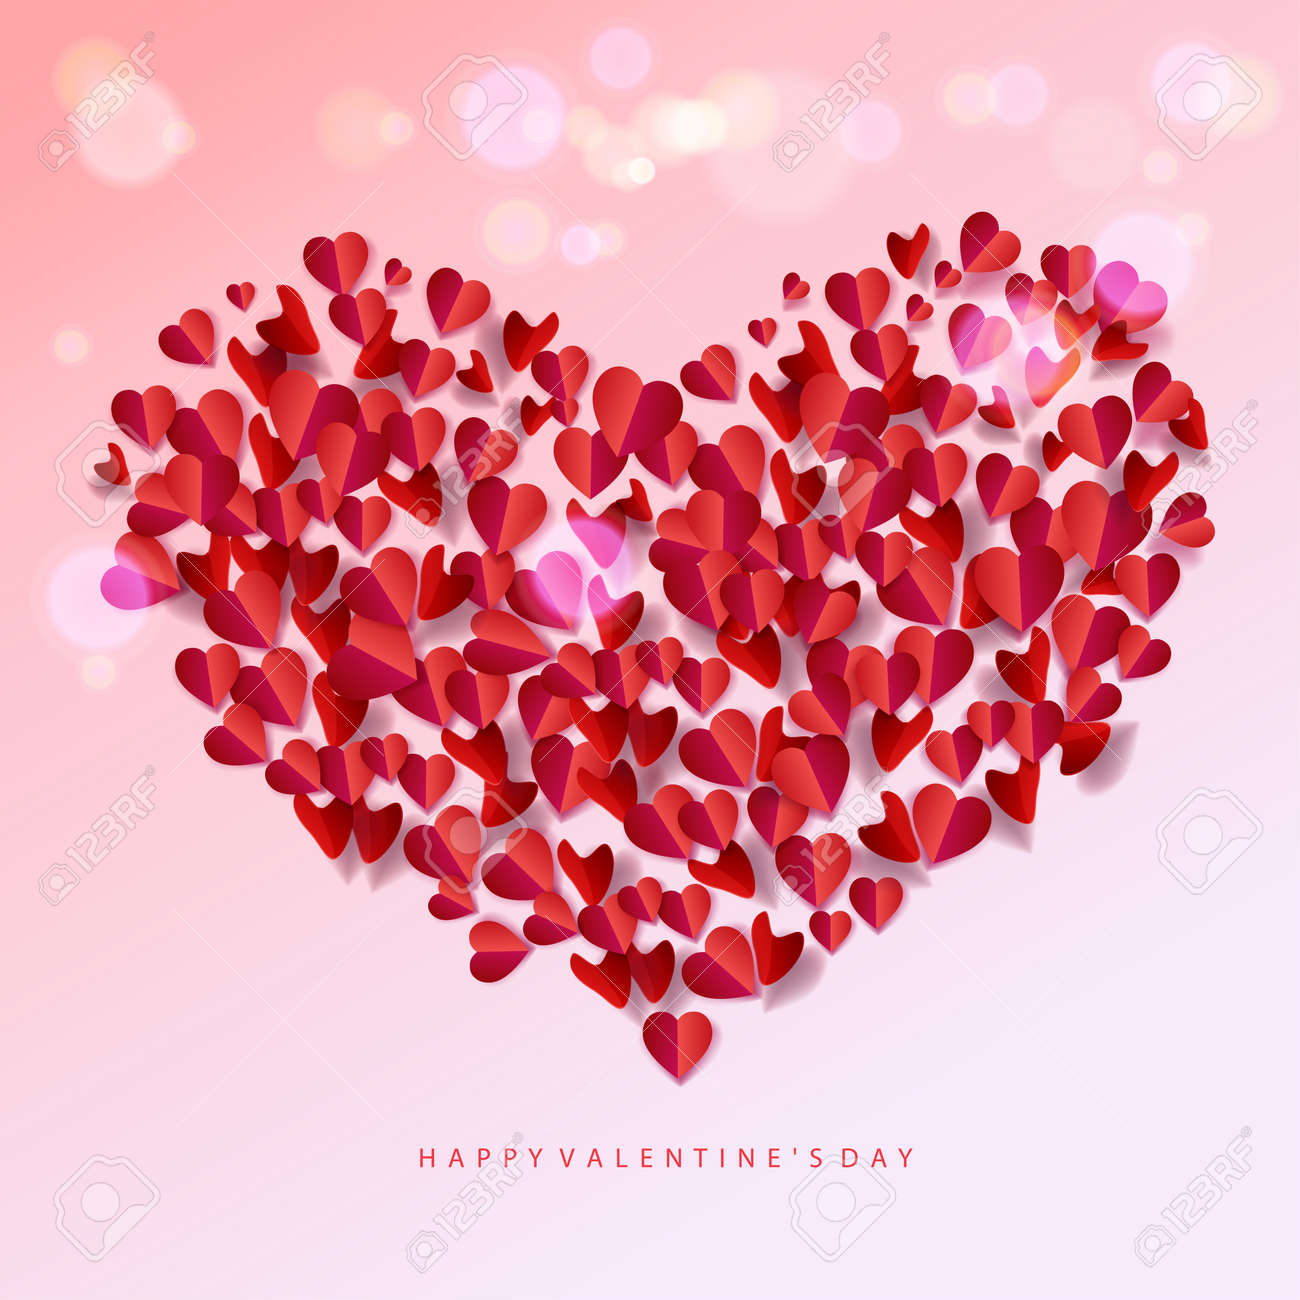 Happy Valentines Day Greeting Card With Heart Shapes Group Paper